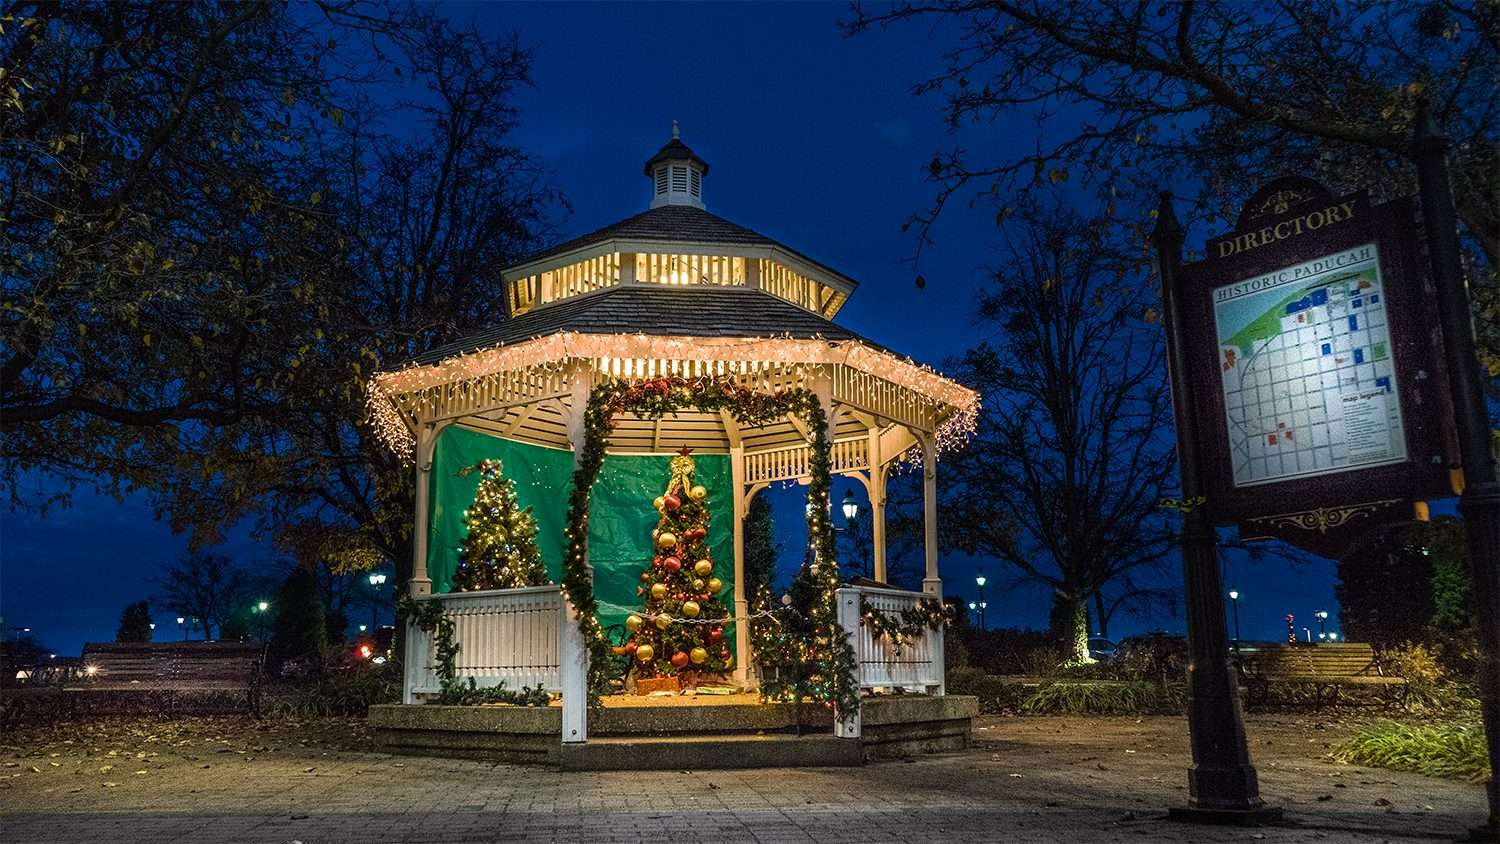 Nov 29, 2017 - Christmas Trees in Gazebo on Broadway Main Street, historic downtown Paducah, KY/photonews247.com